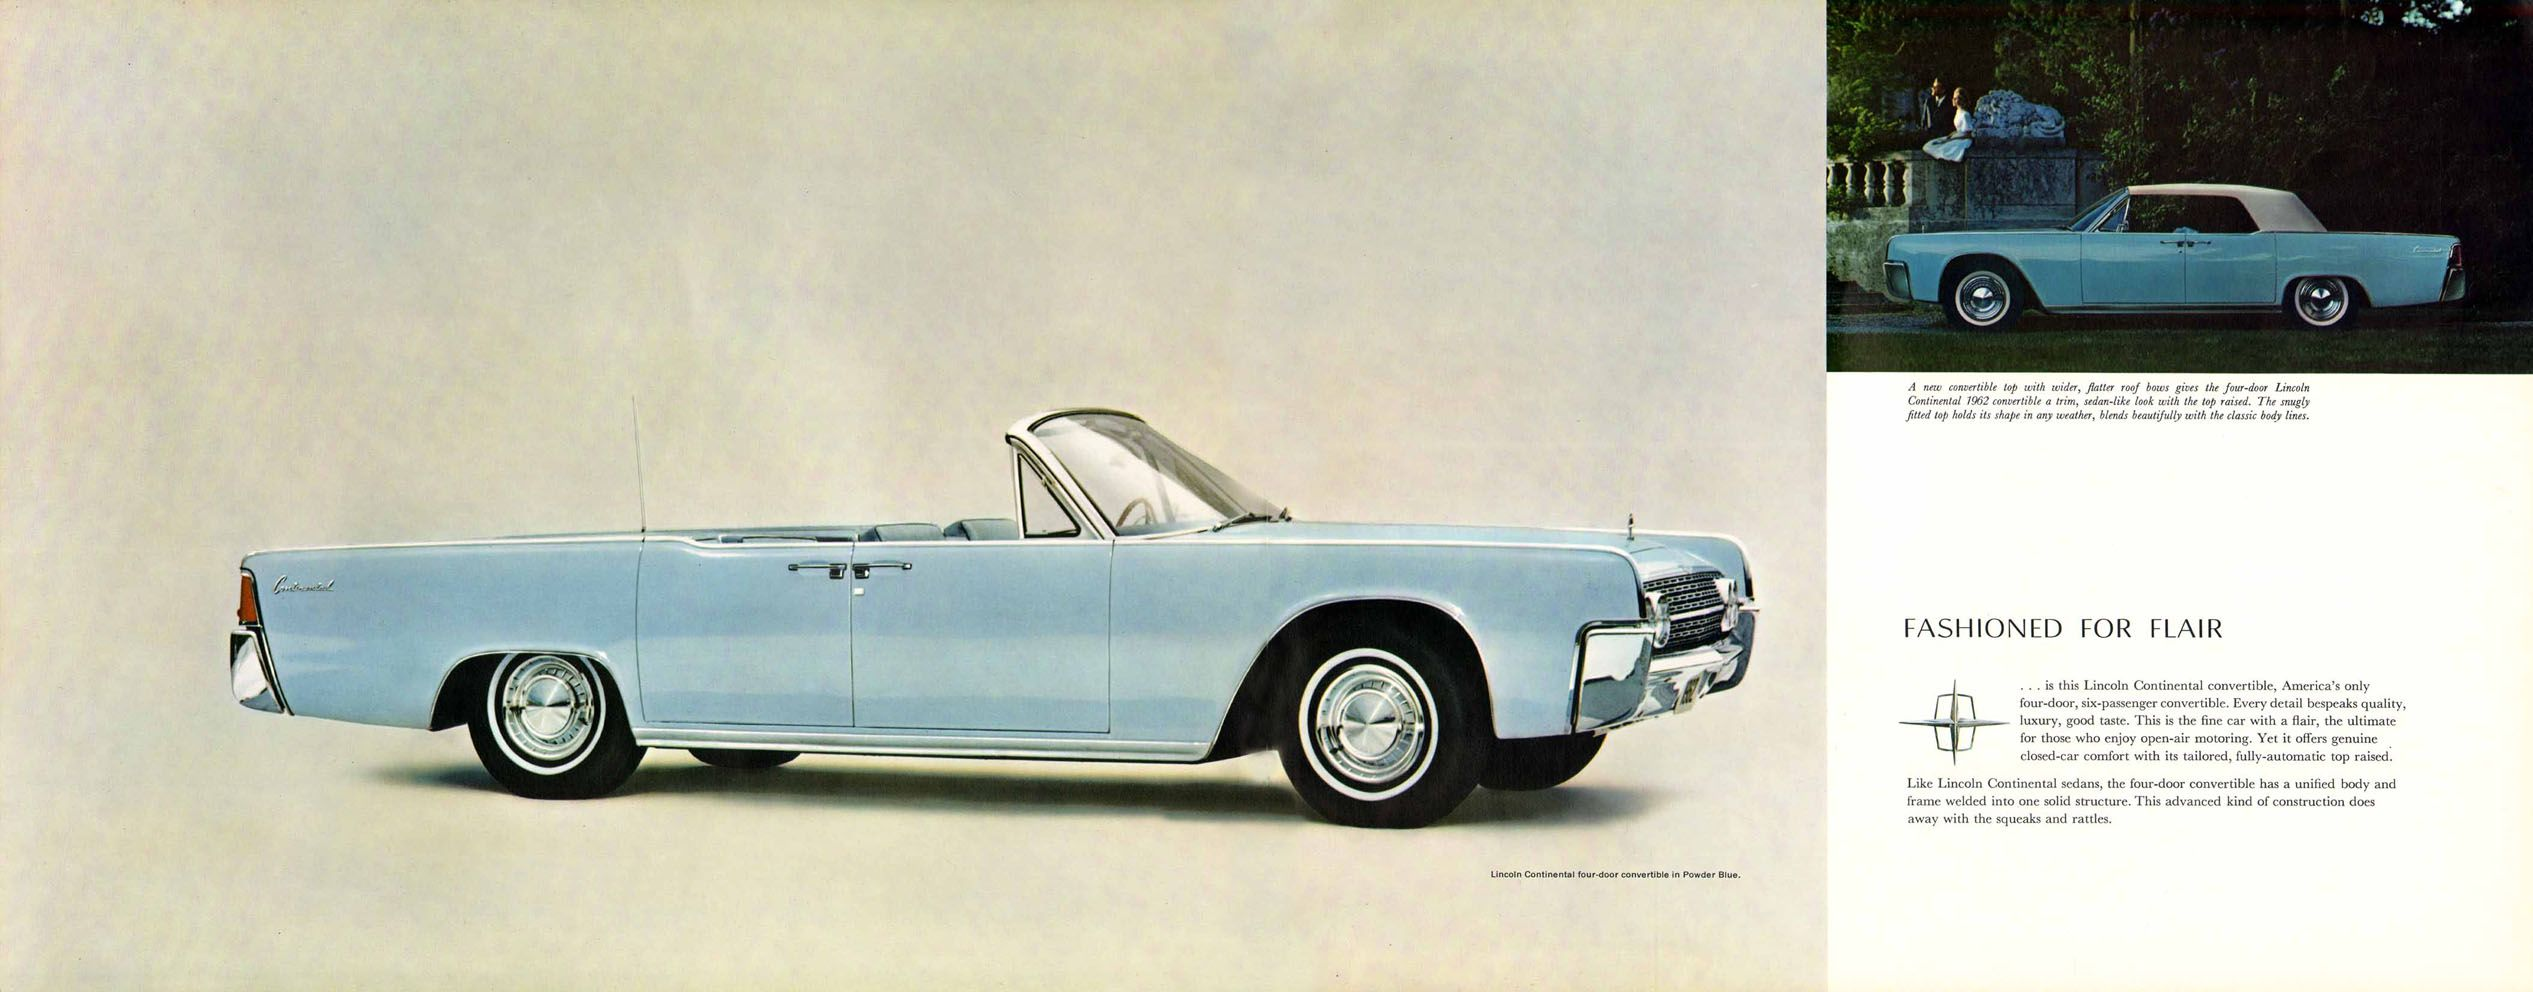 1962 Lincoln Continental | 60s | Pinterest | Collectible cars and Cars